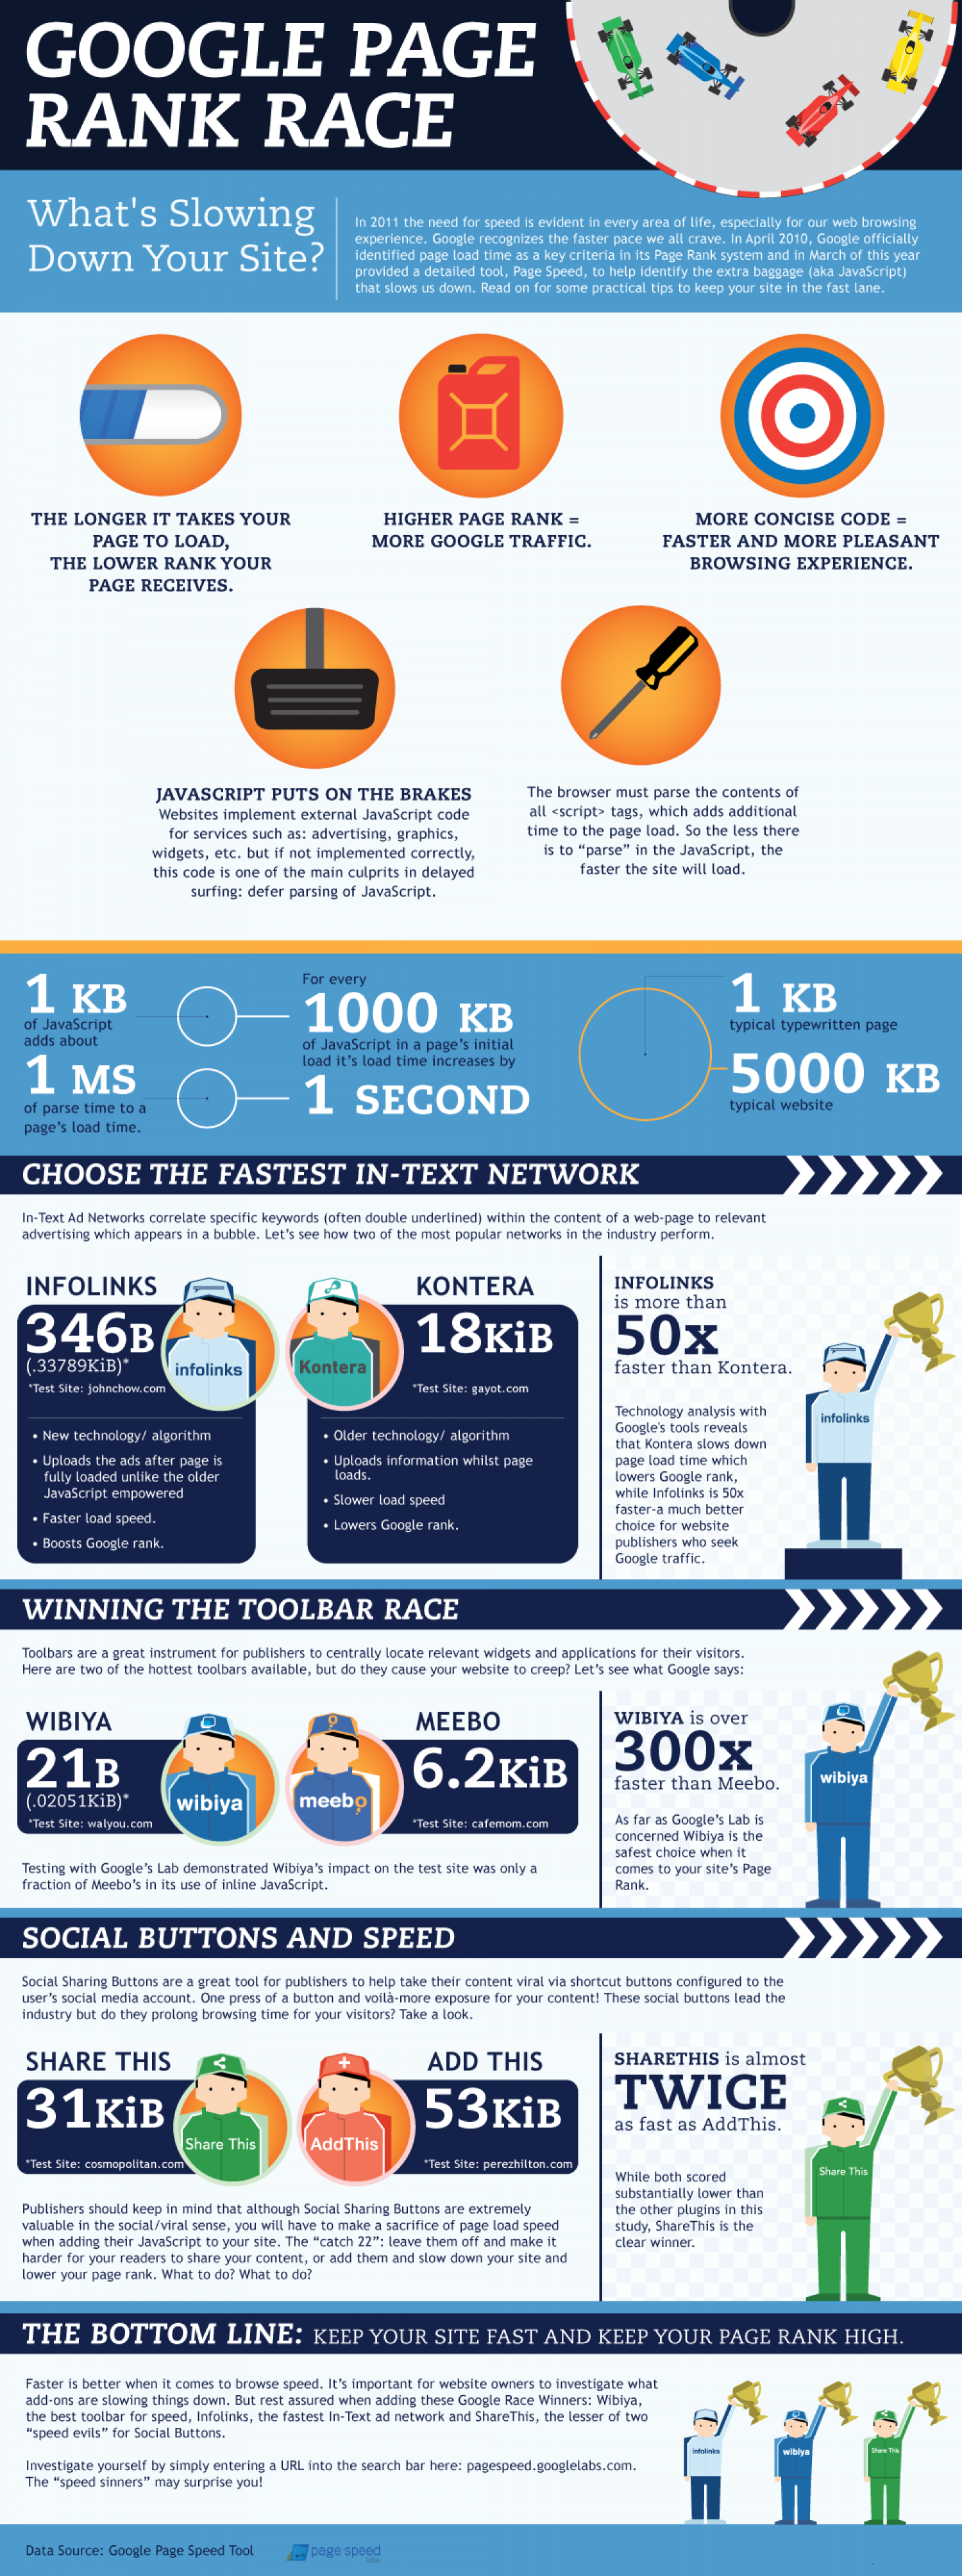 Google Page Rank Race  Infographic